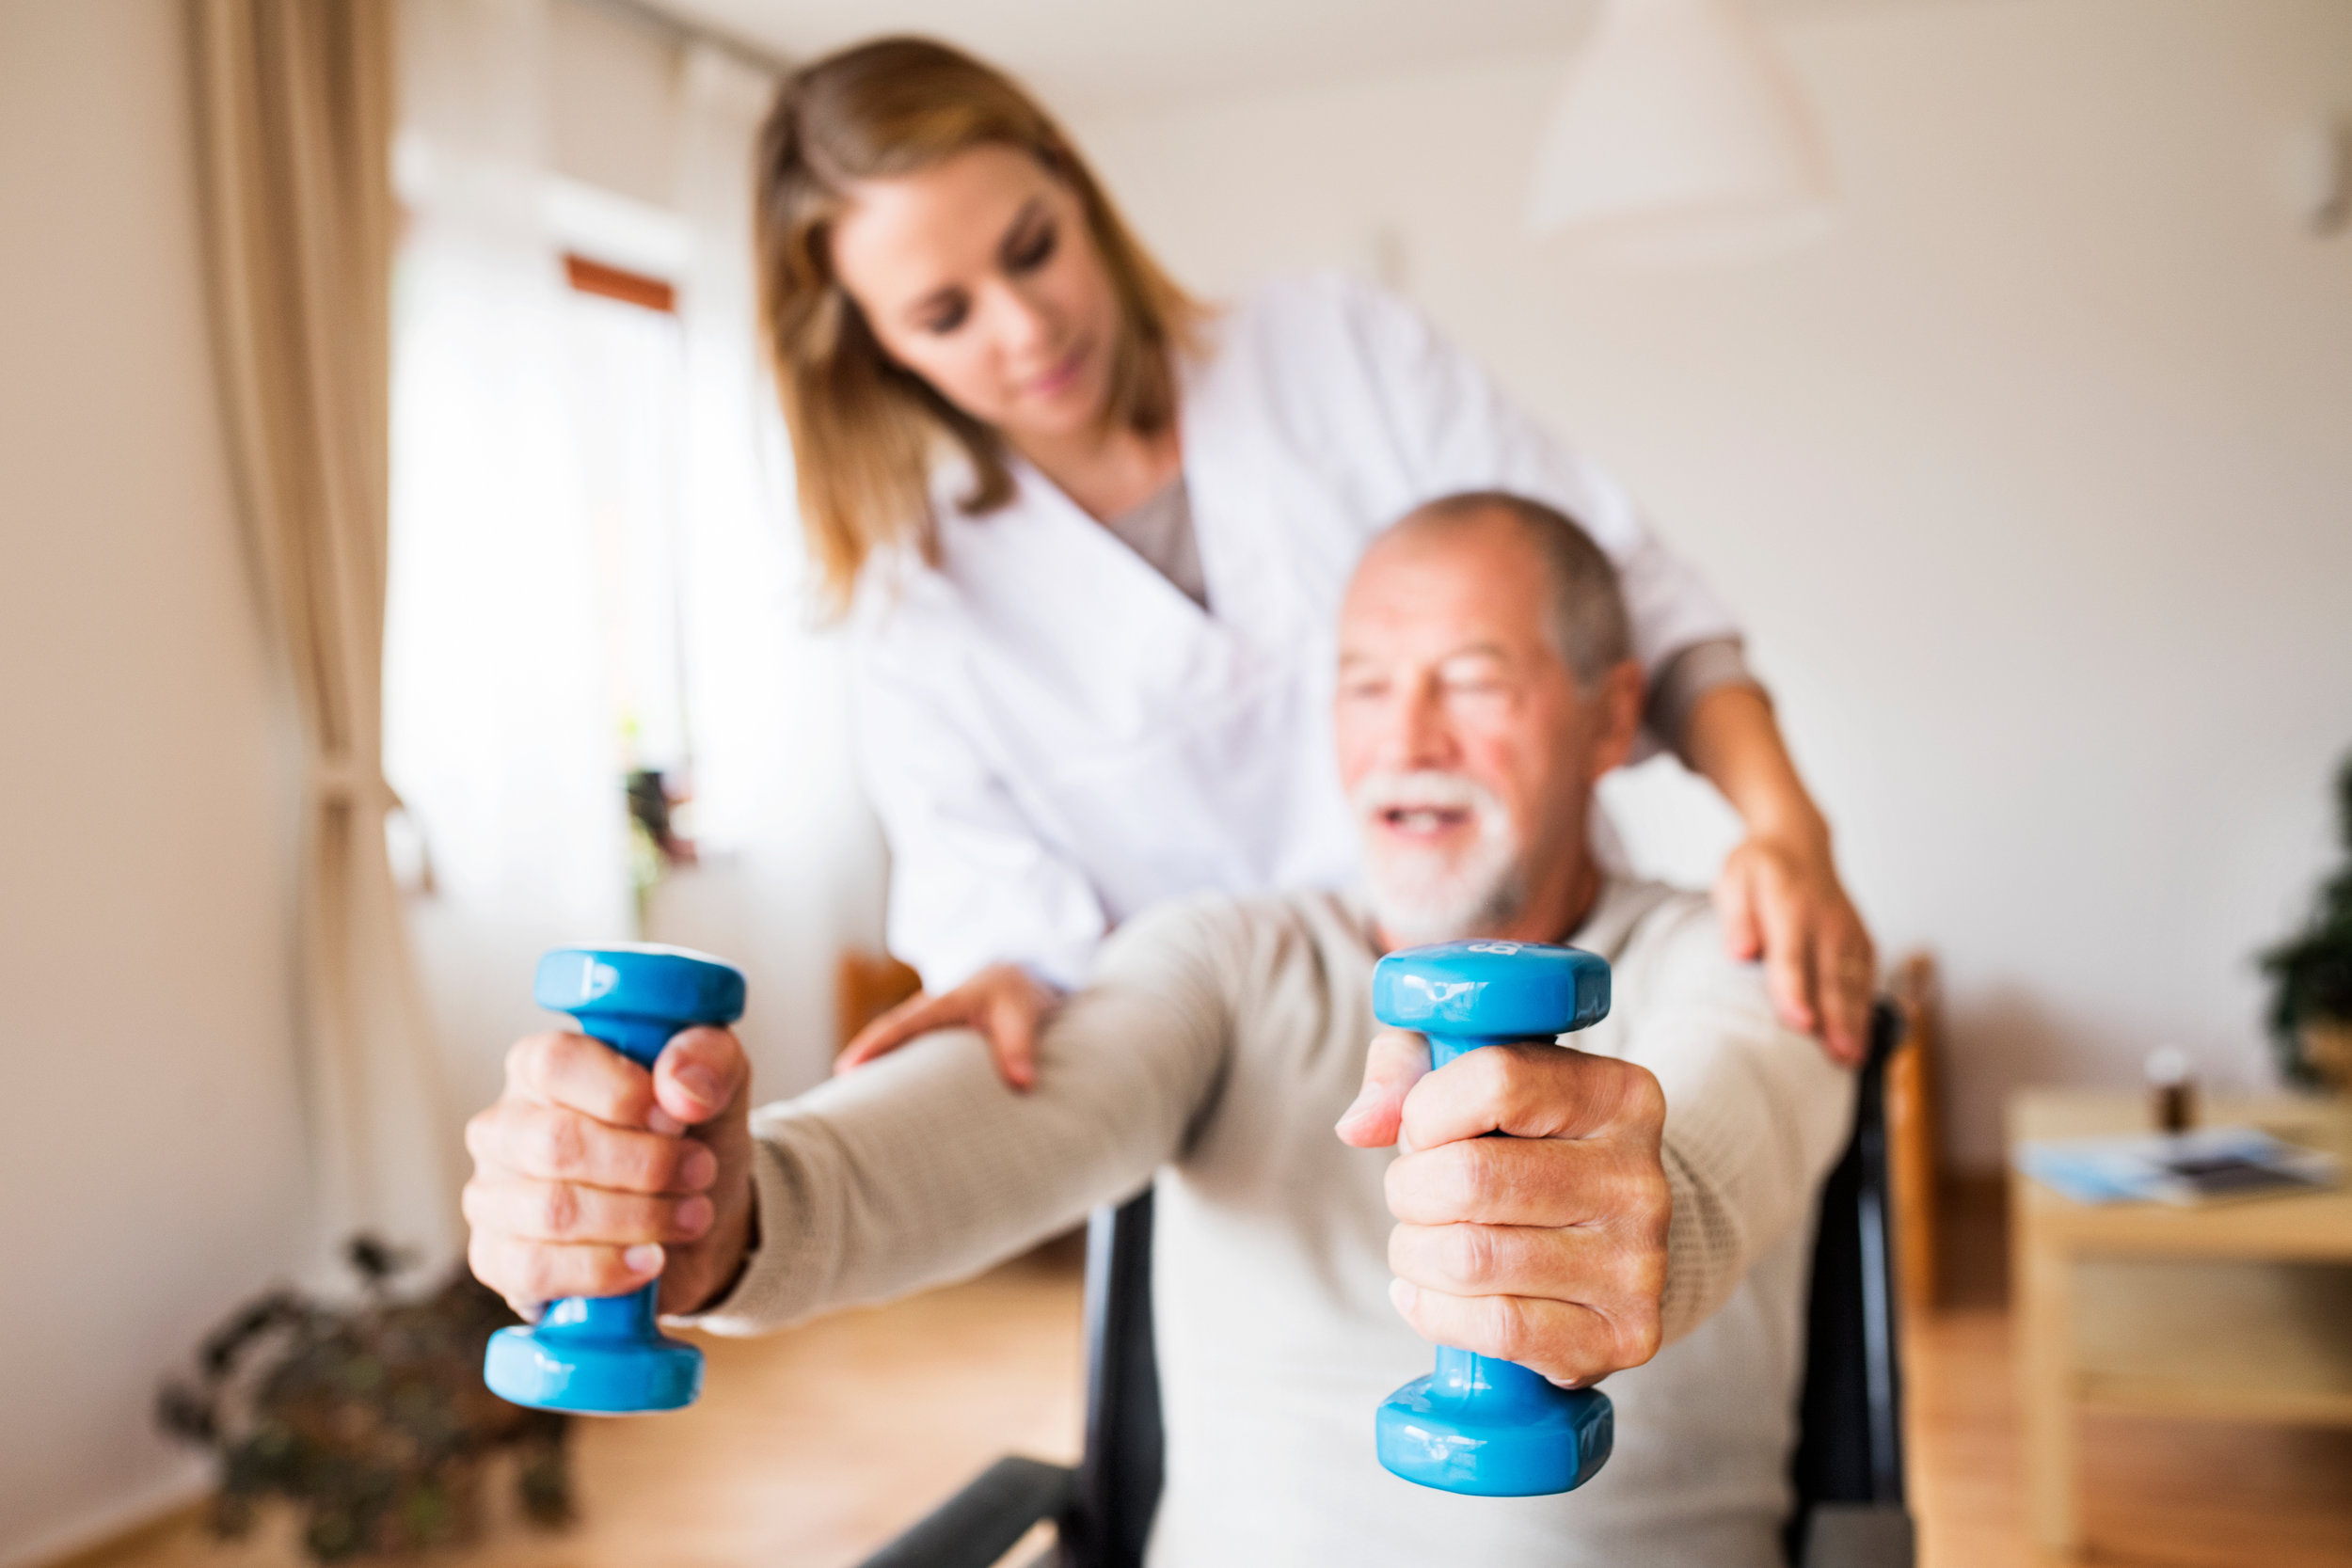 Woman working with a man in physical therapy.